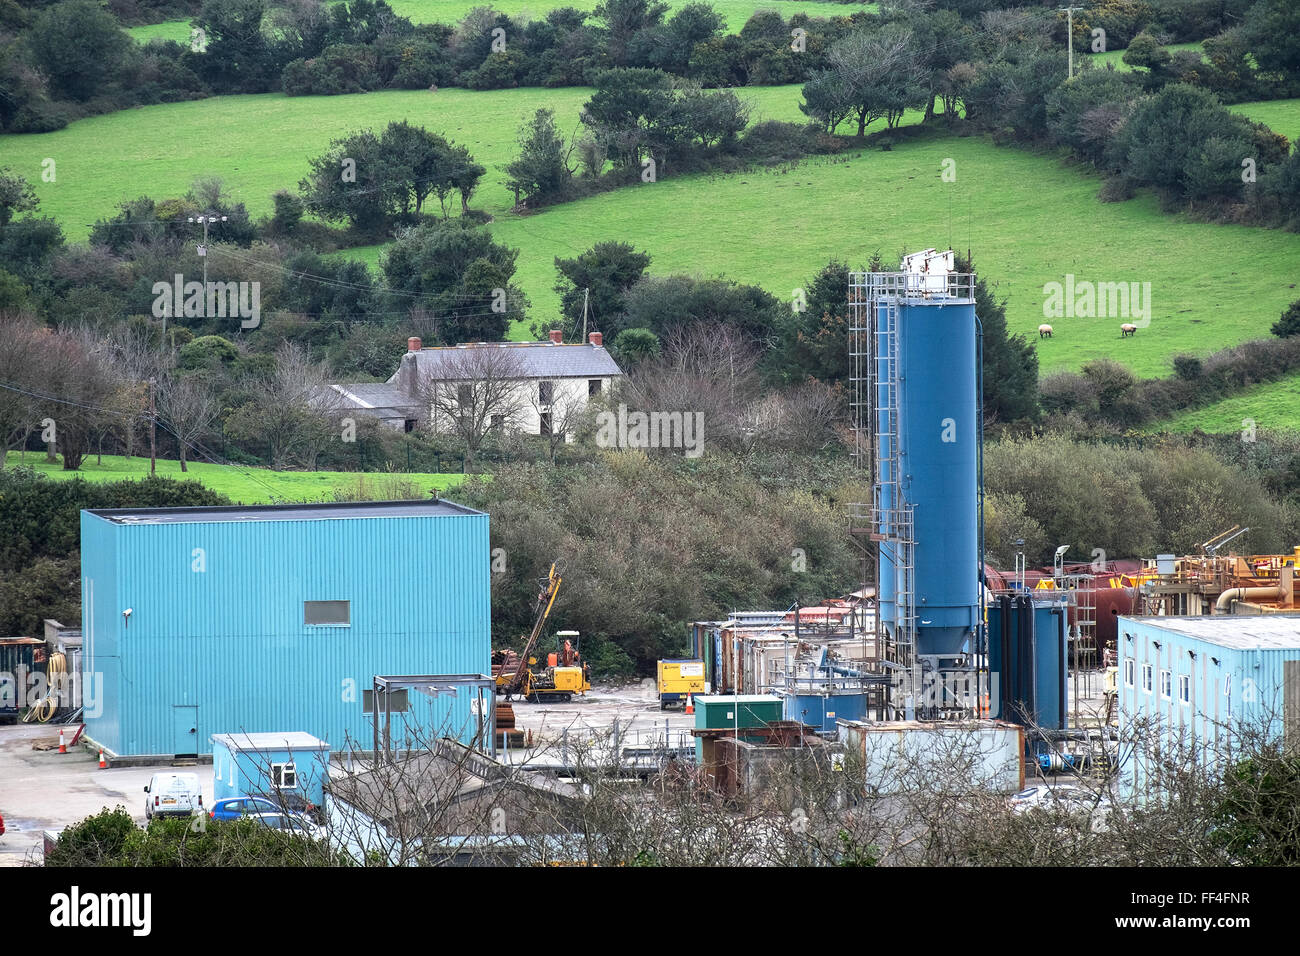 Wheal Jane Earth Science Park near Chacewater in Cornwall, UK - Stock Image